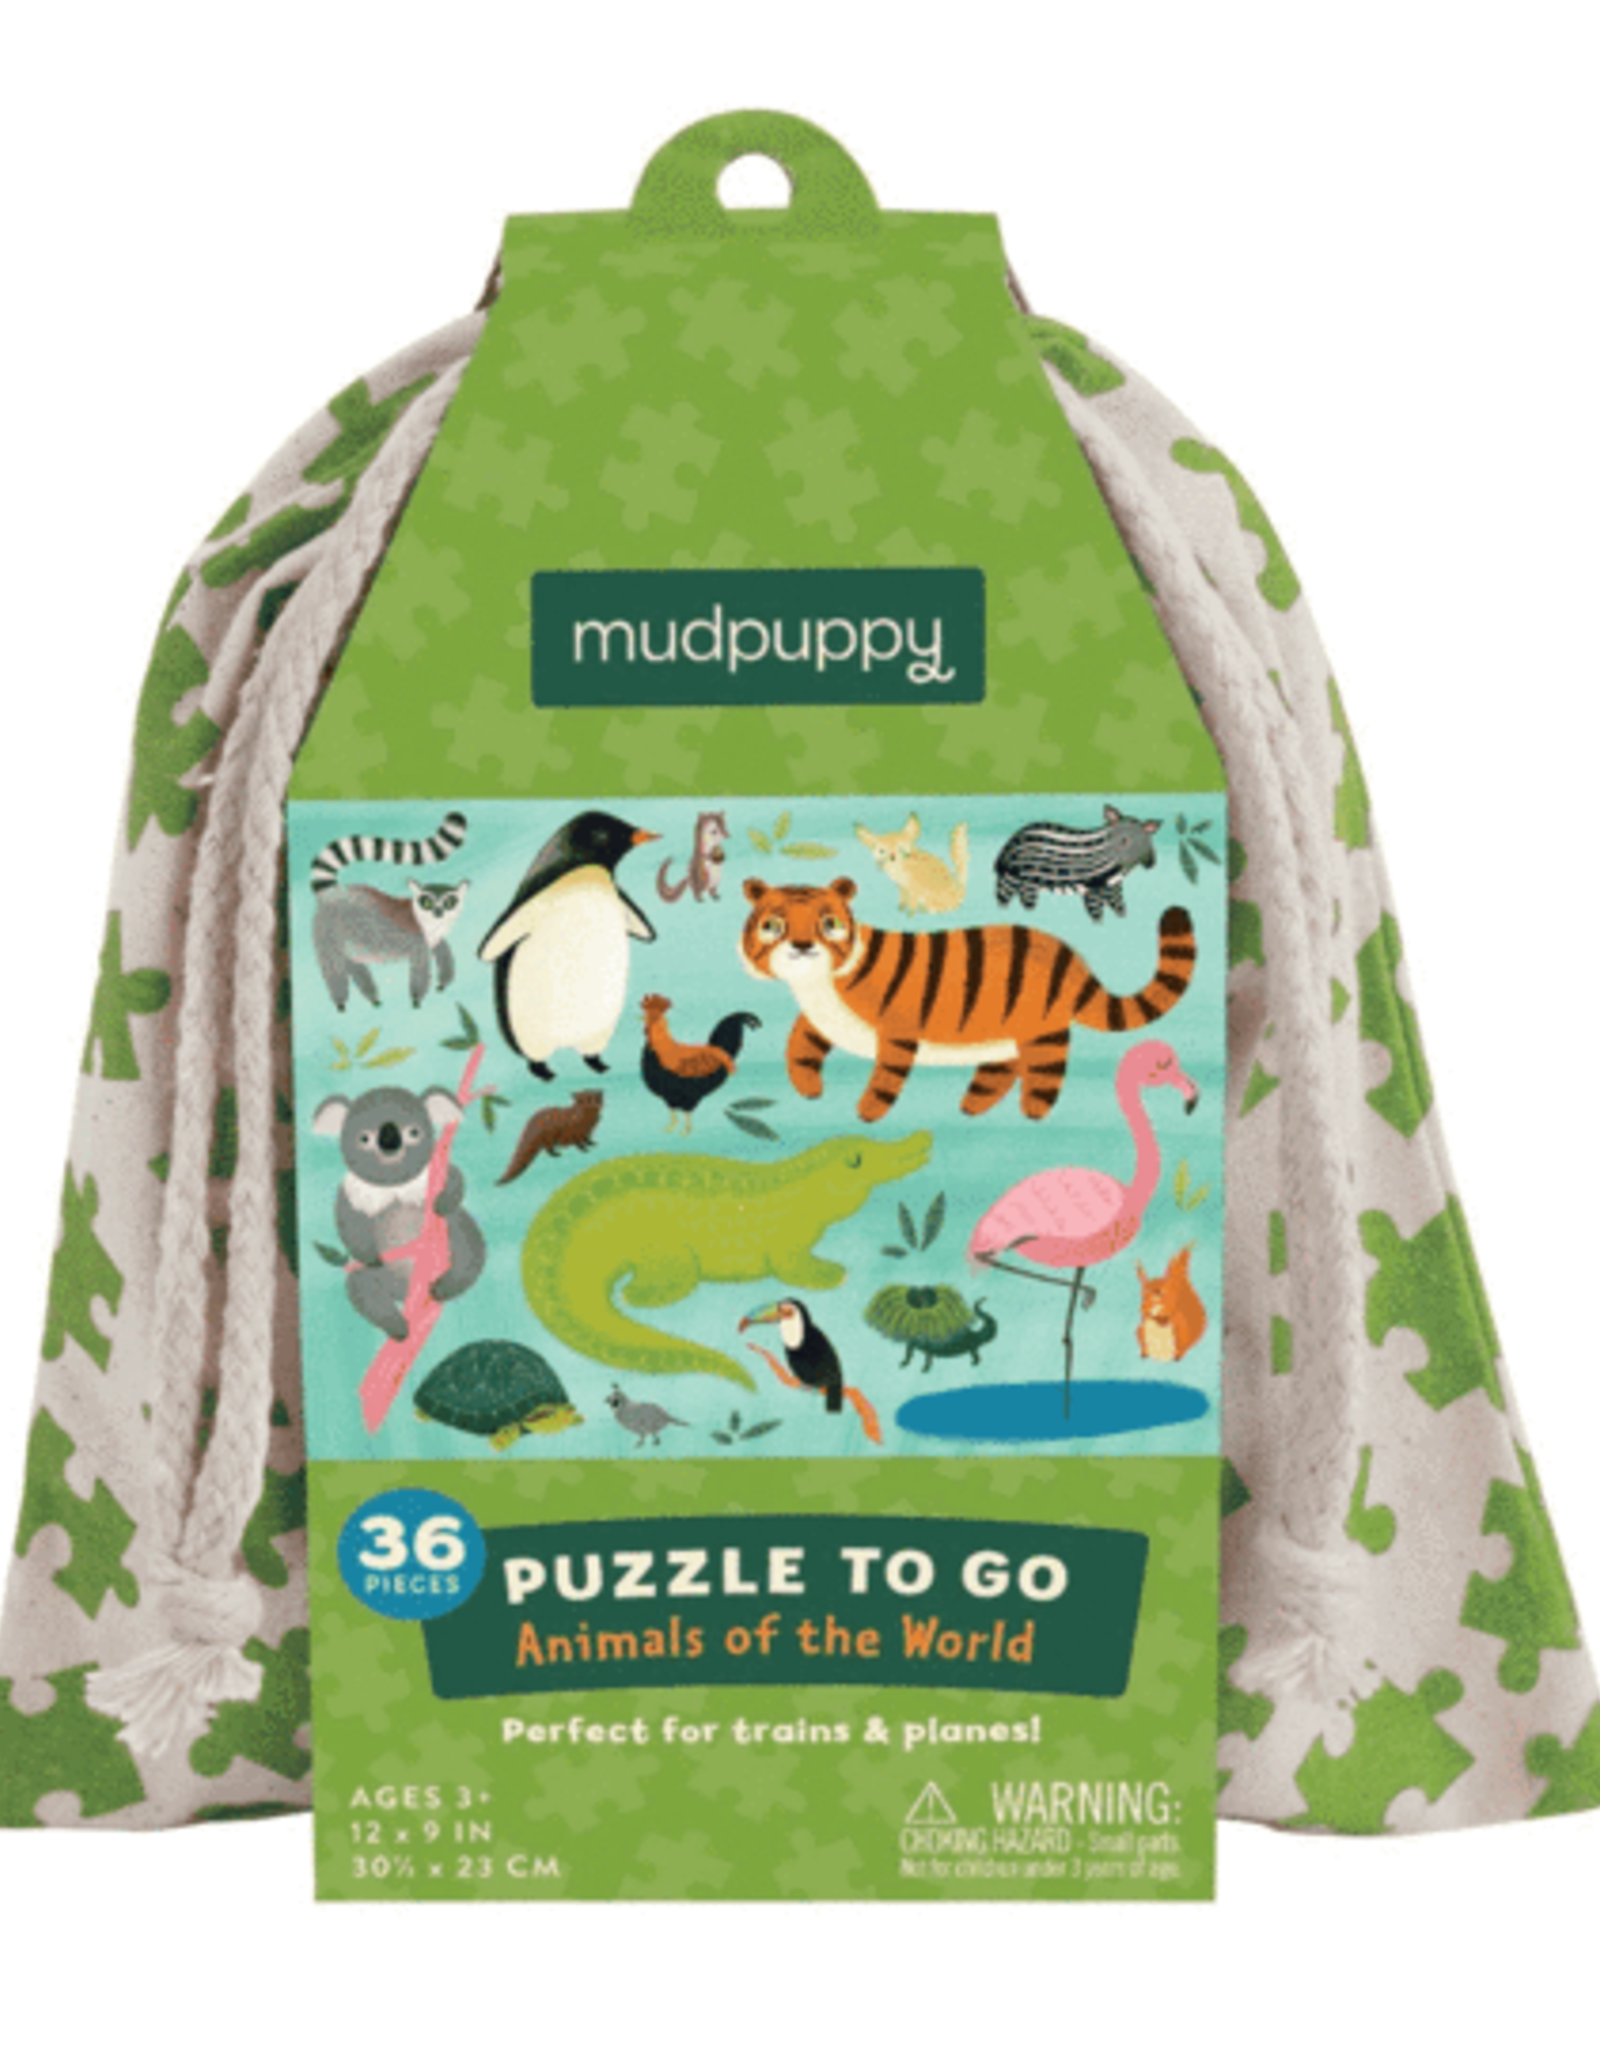 Mudpuppy Puzzle To Go Animals of the World